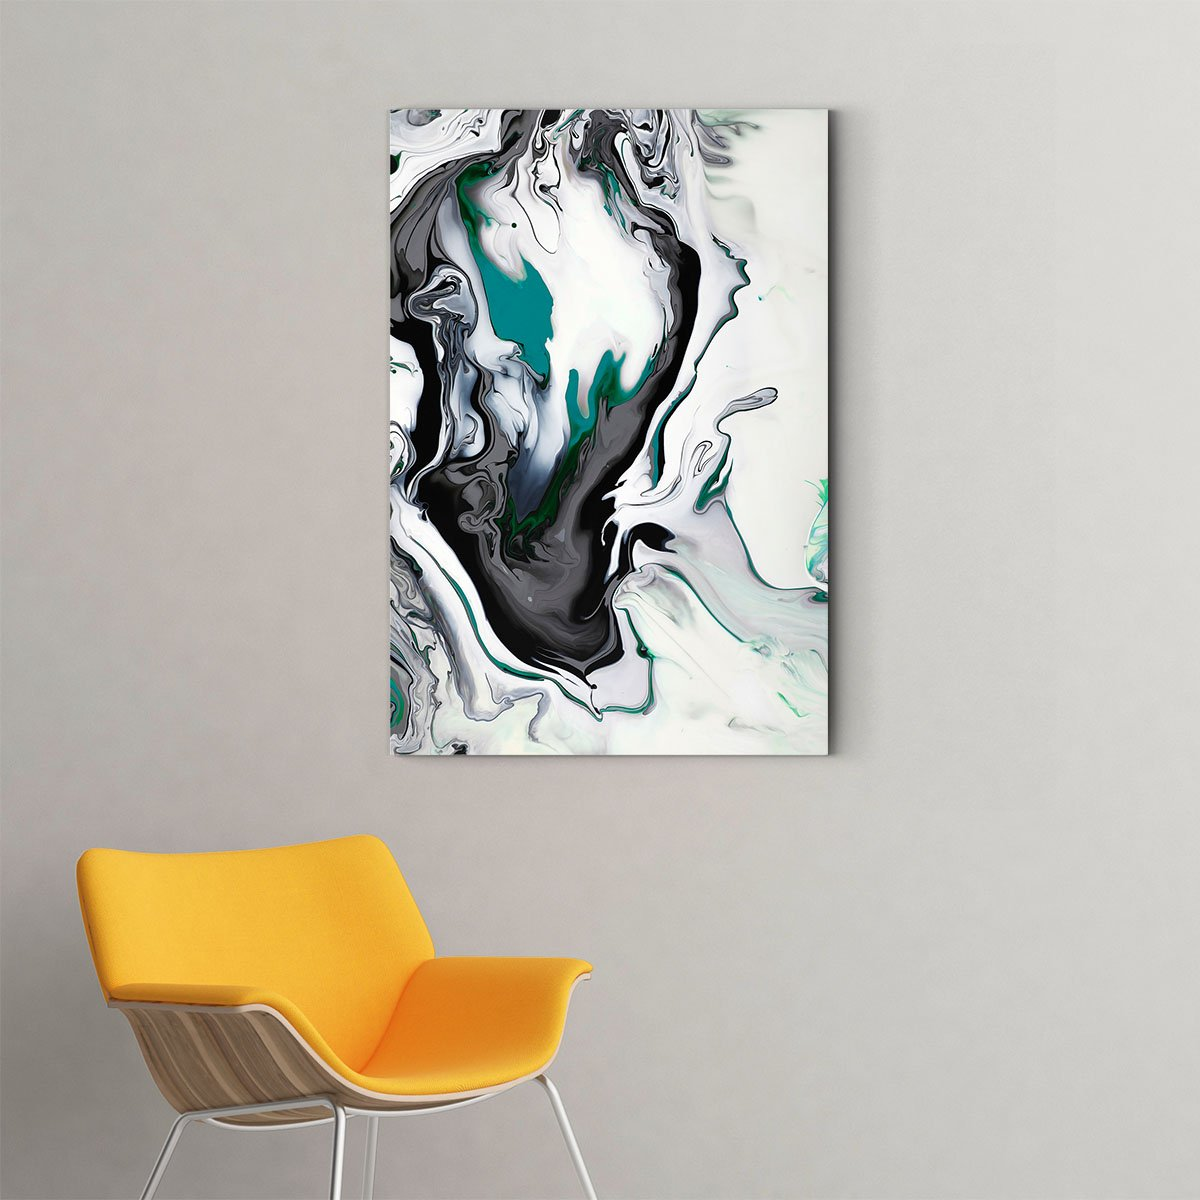 Elegant art abstract decorative painting 001